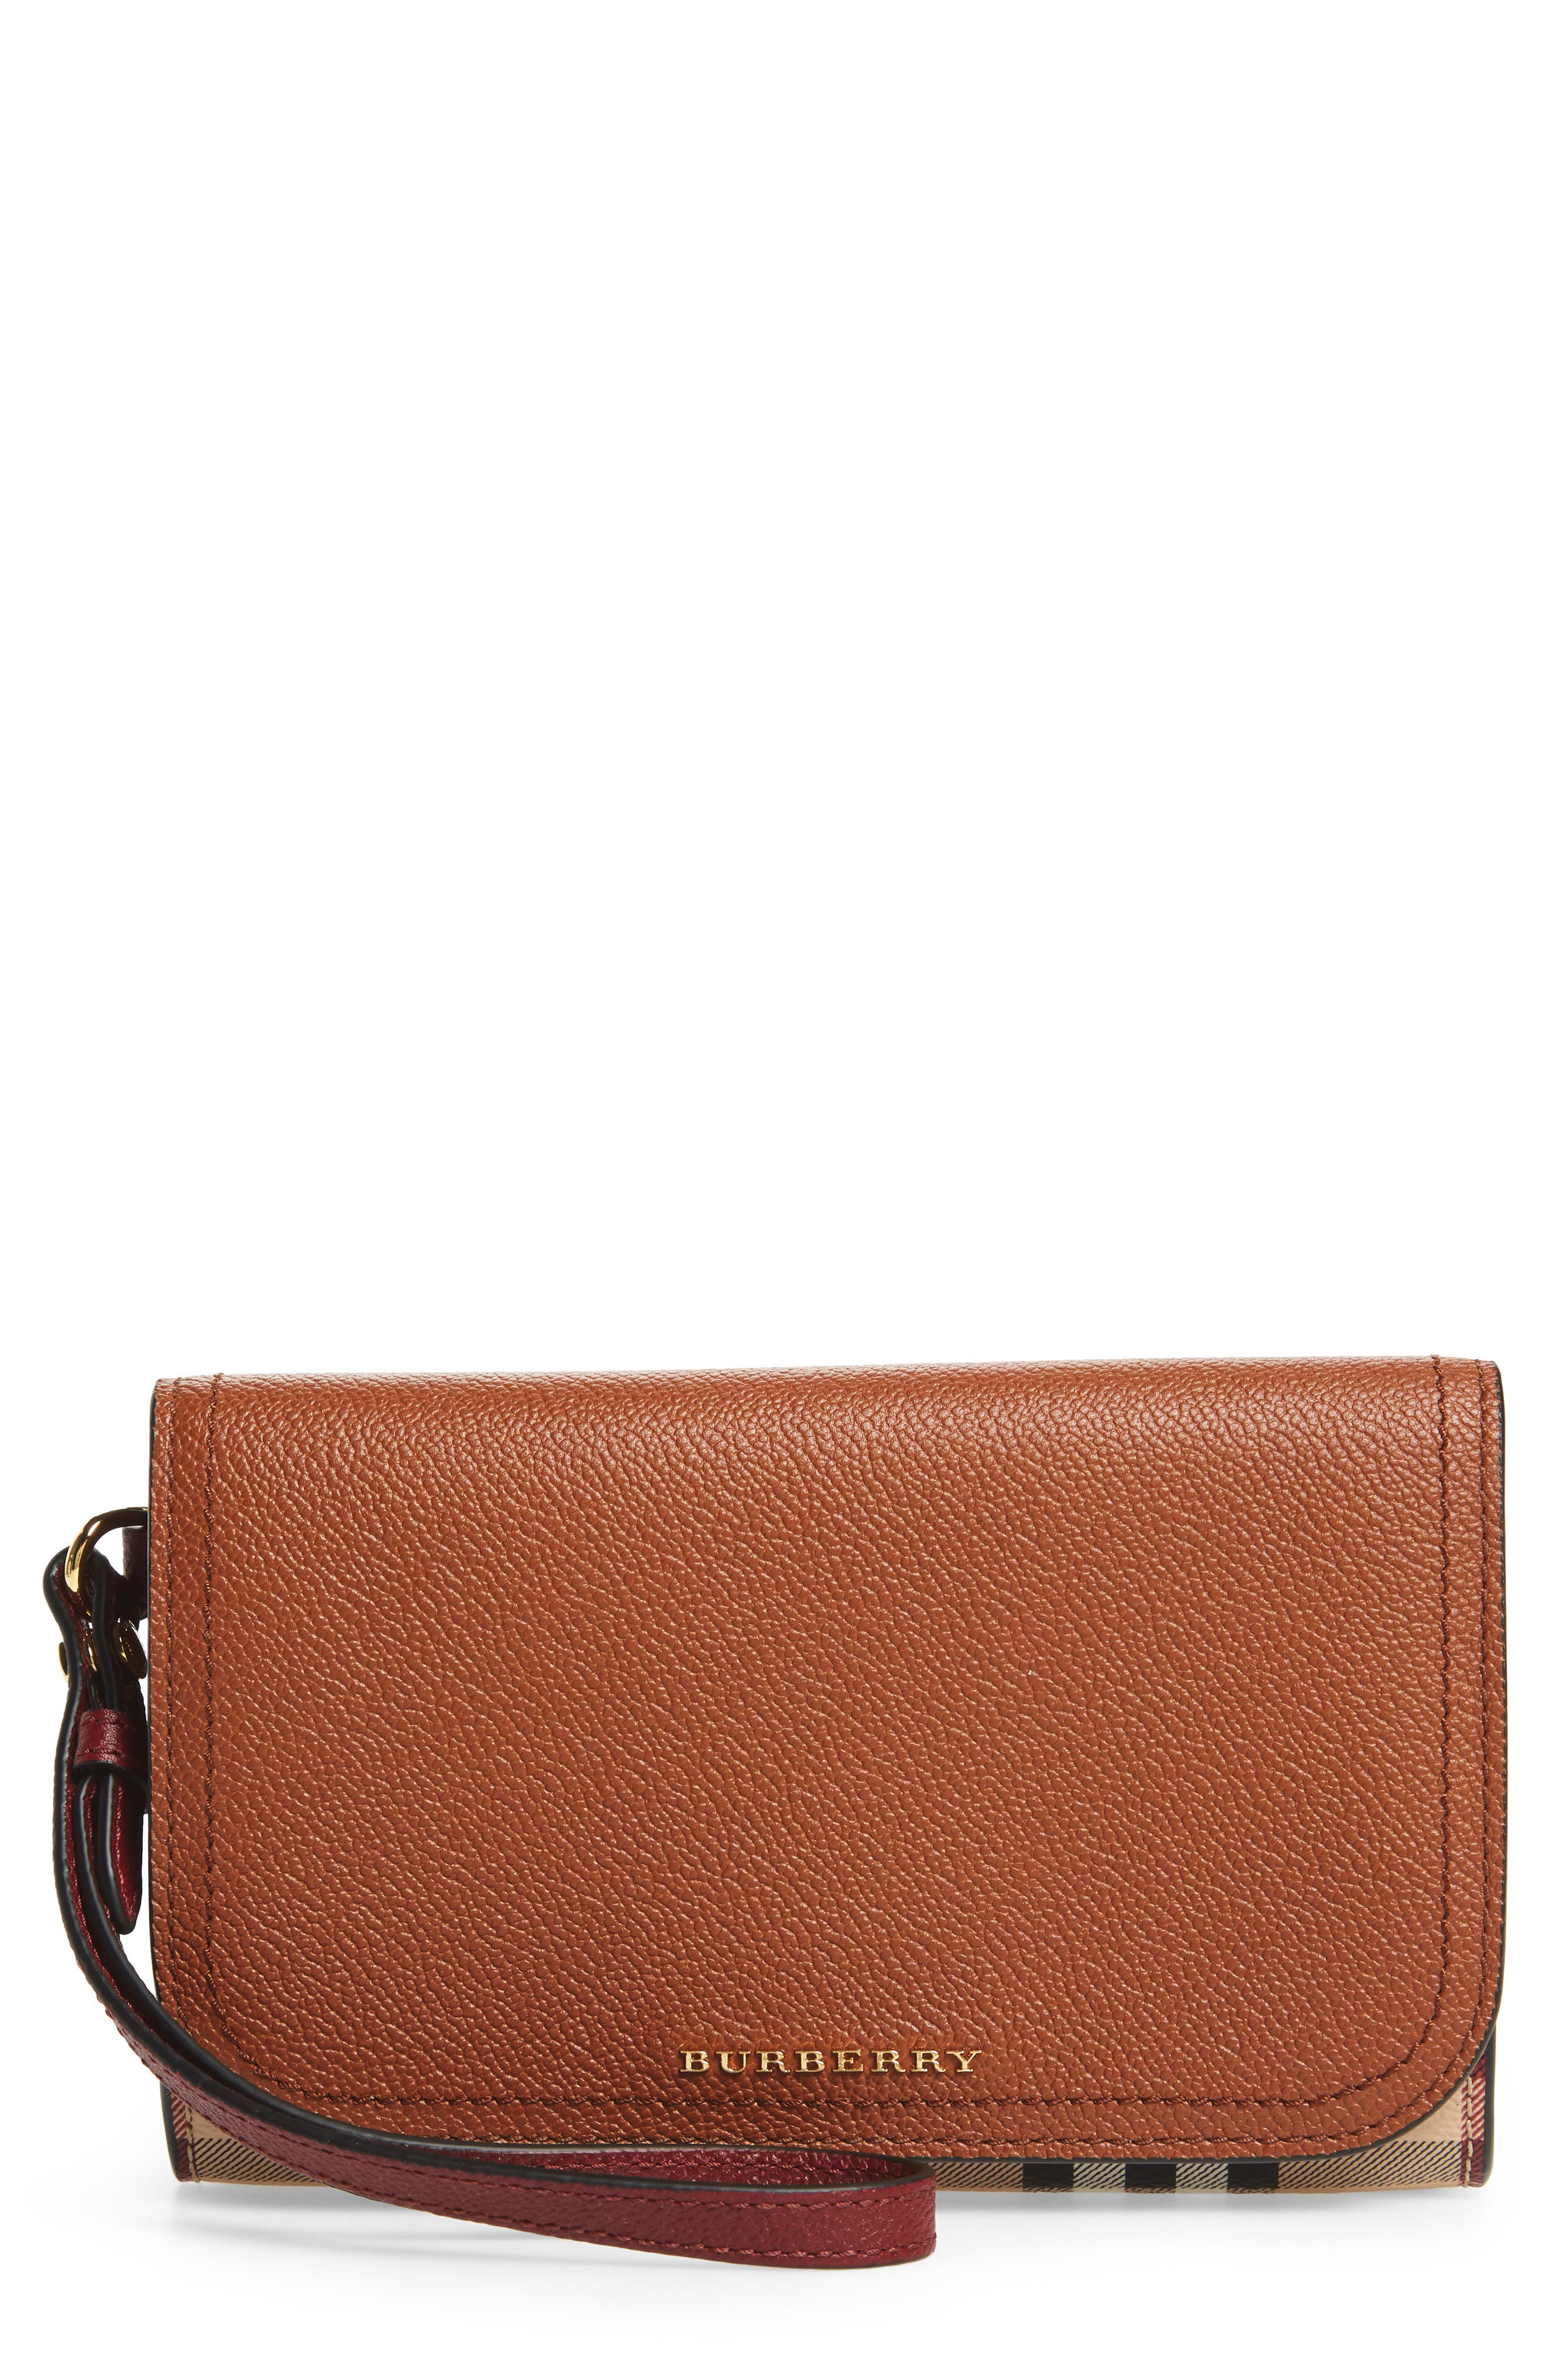 Burberry Paine Leather Wristlet